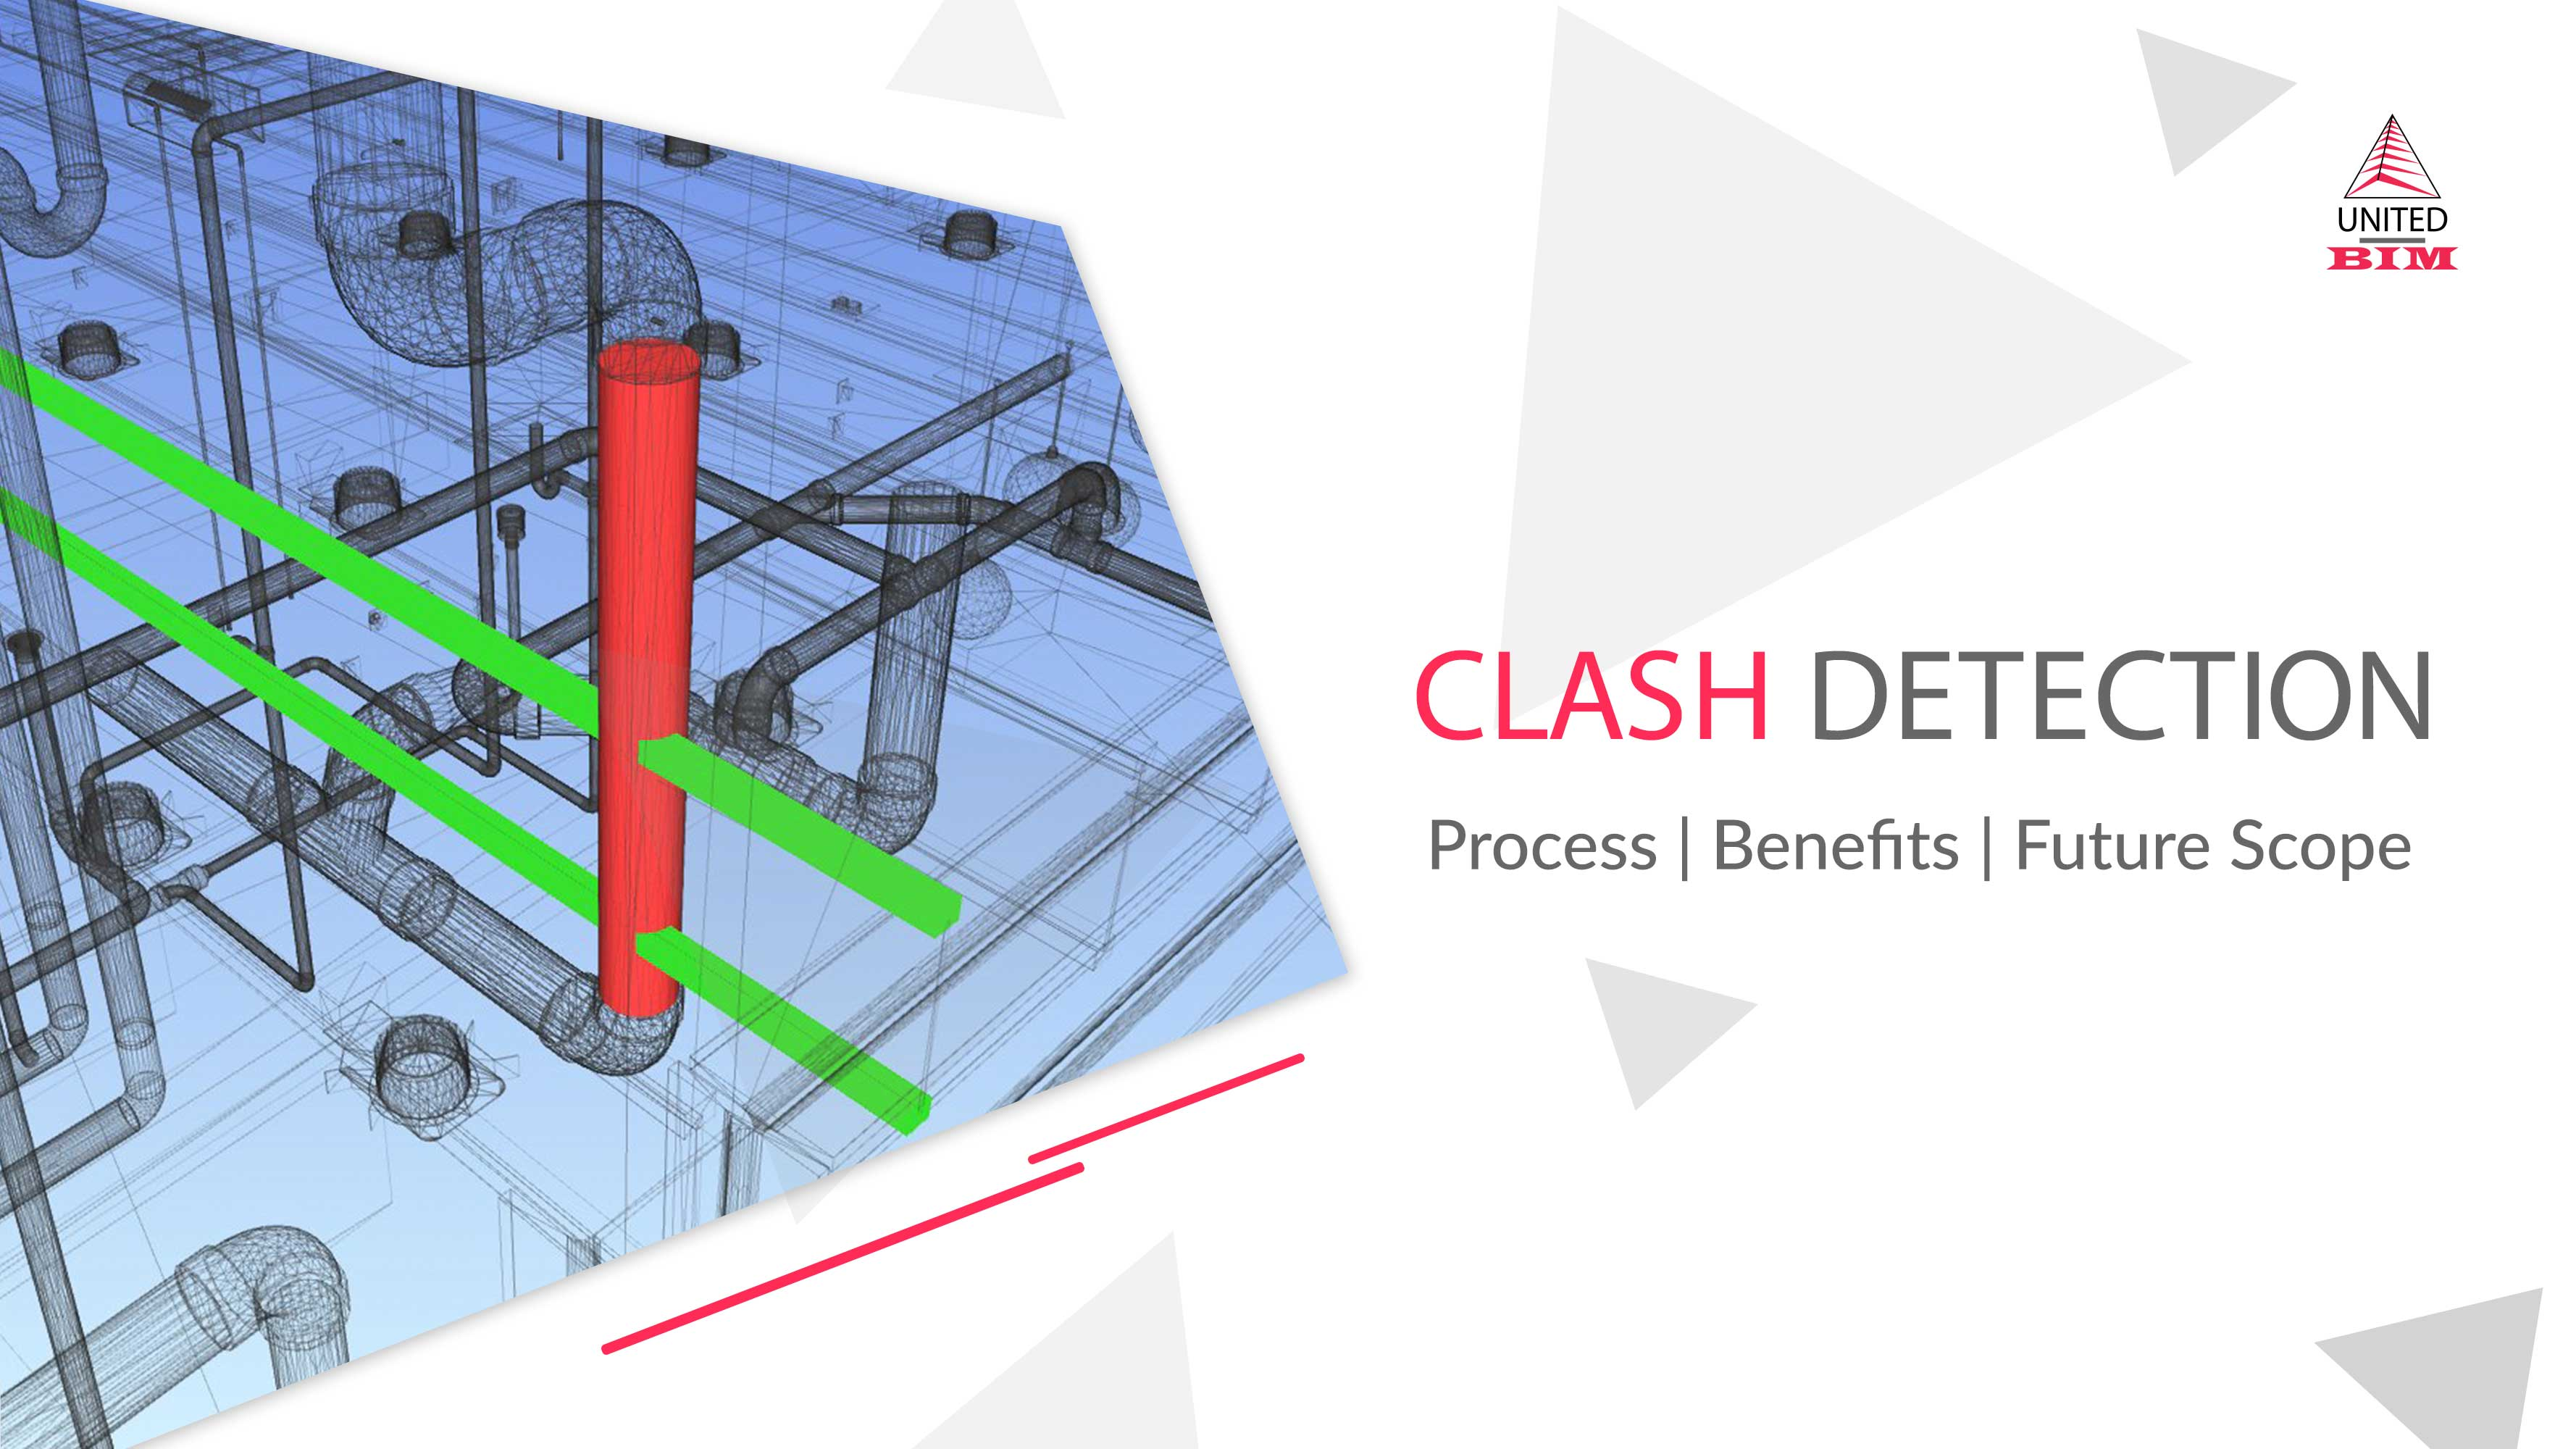 Clash-Detection-Definition-Benefits-and-Future-Scope-in-AEC-Industry--Blog-Article-by-United-BIM